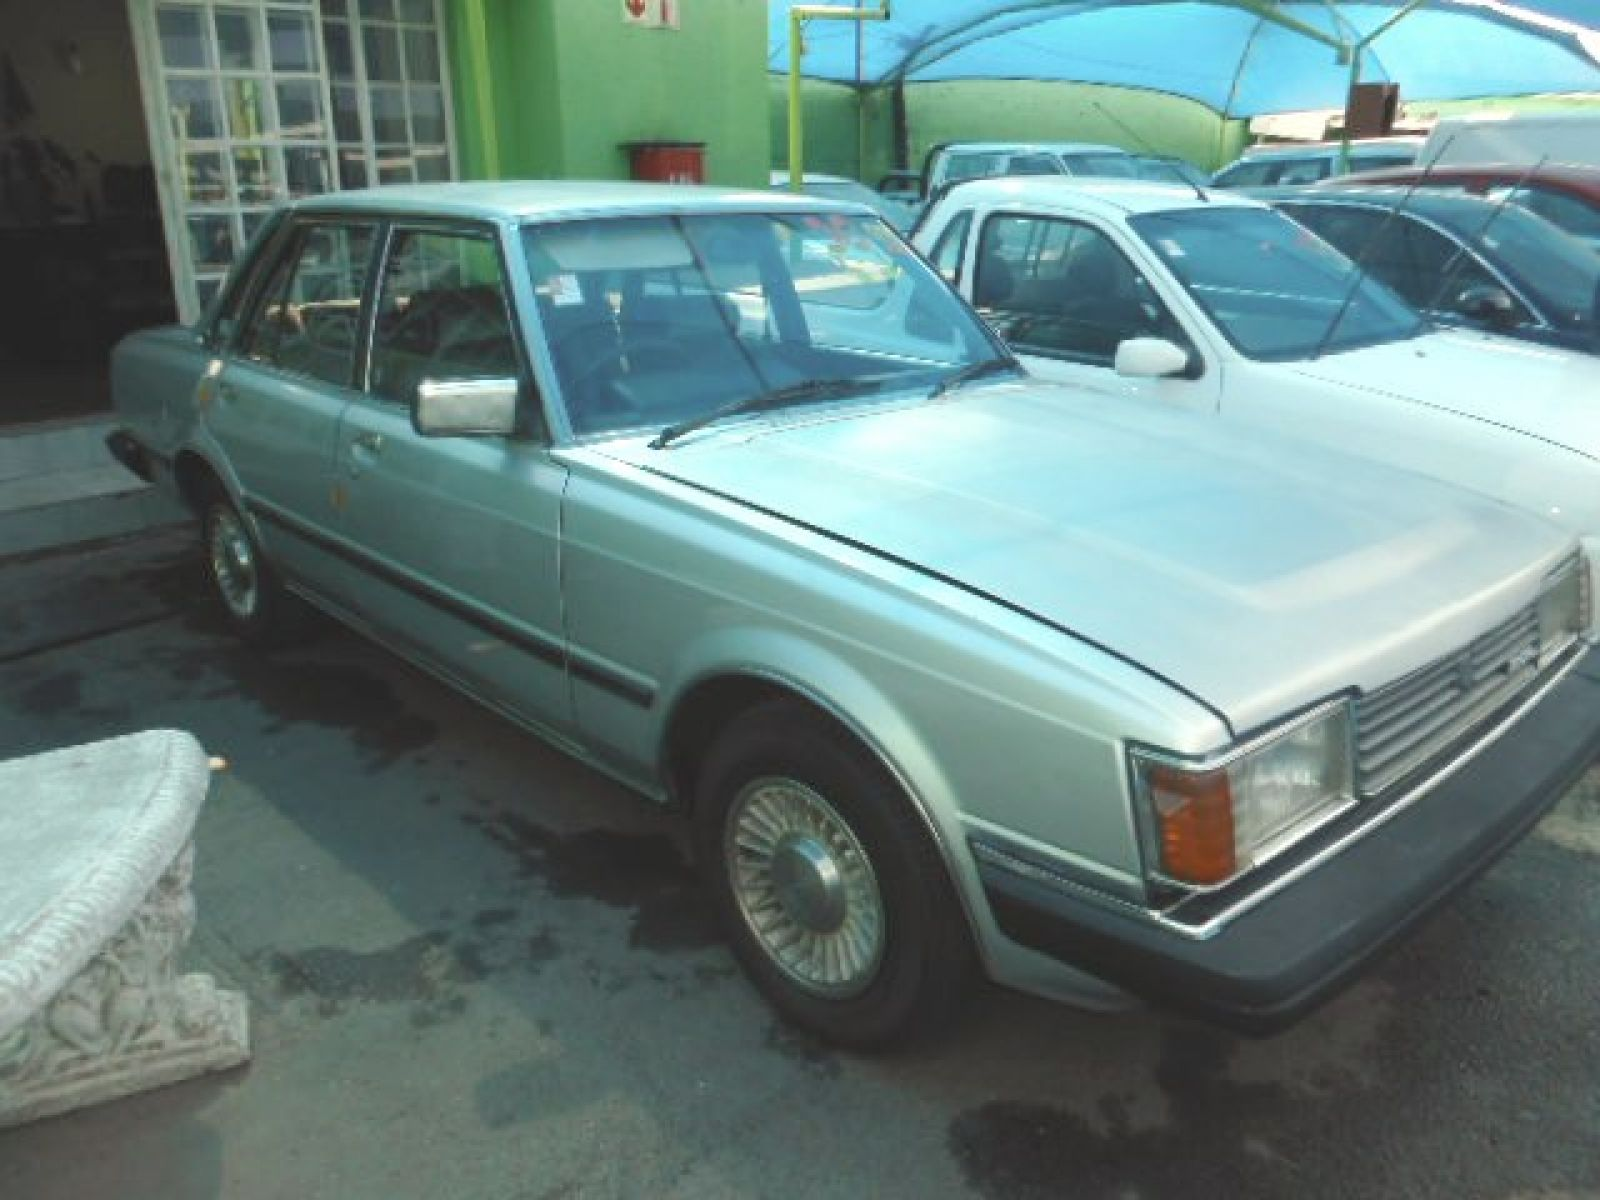 Toyota Cressida Glx For Sale In Roodepoort Gauteng